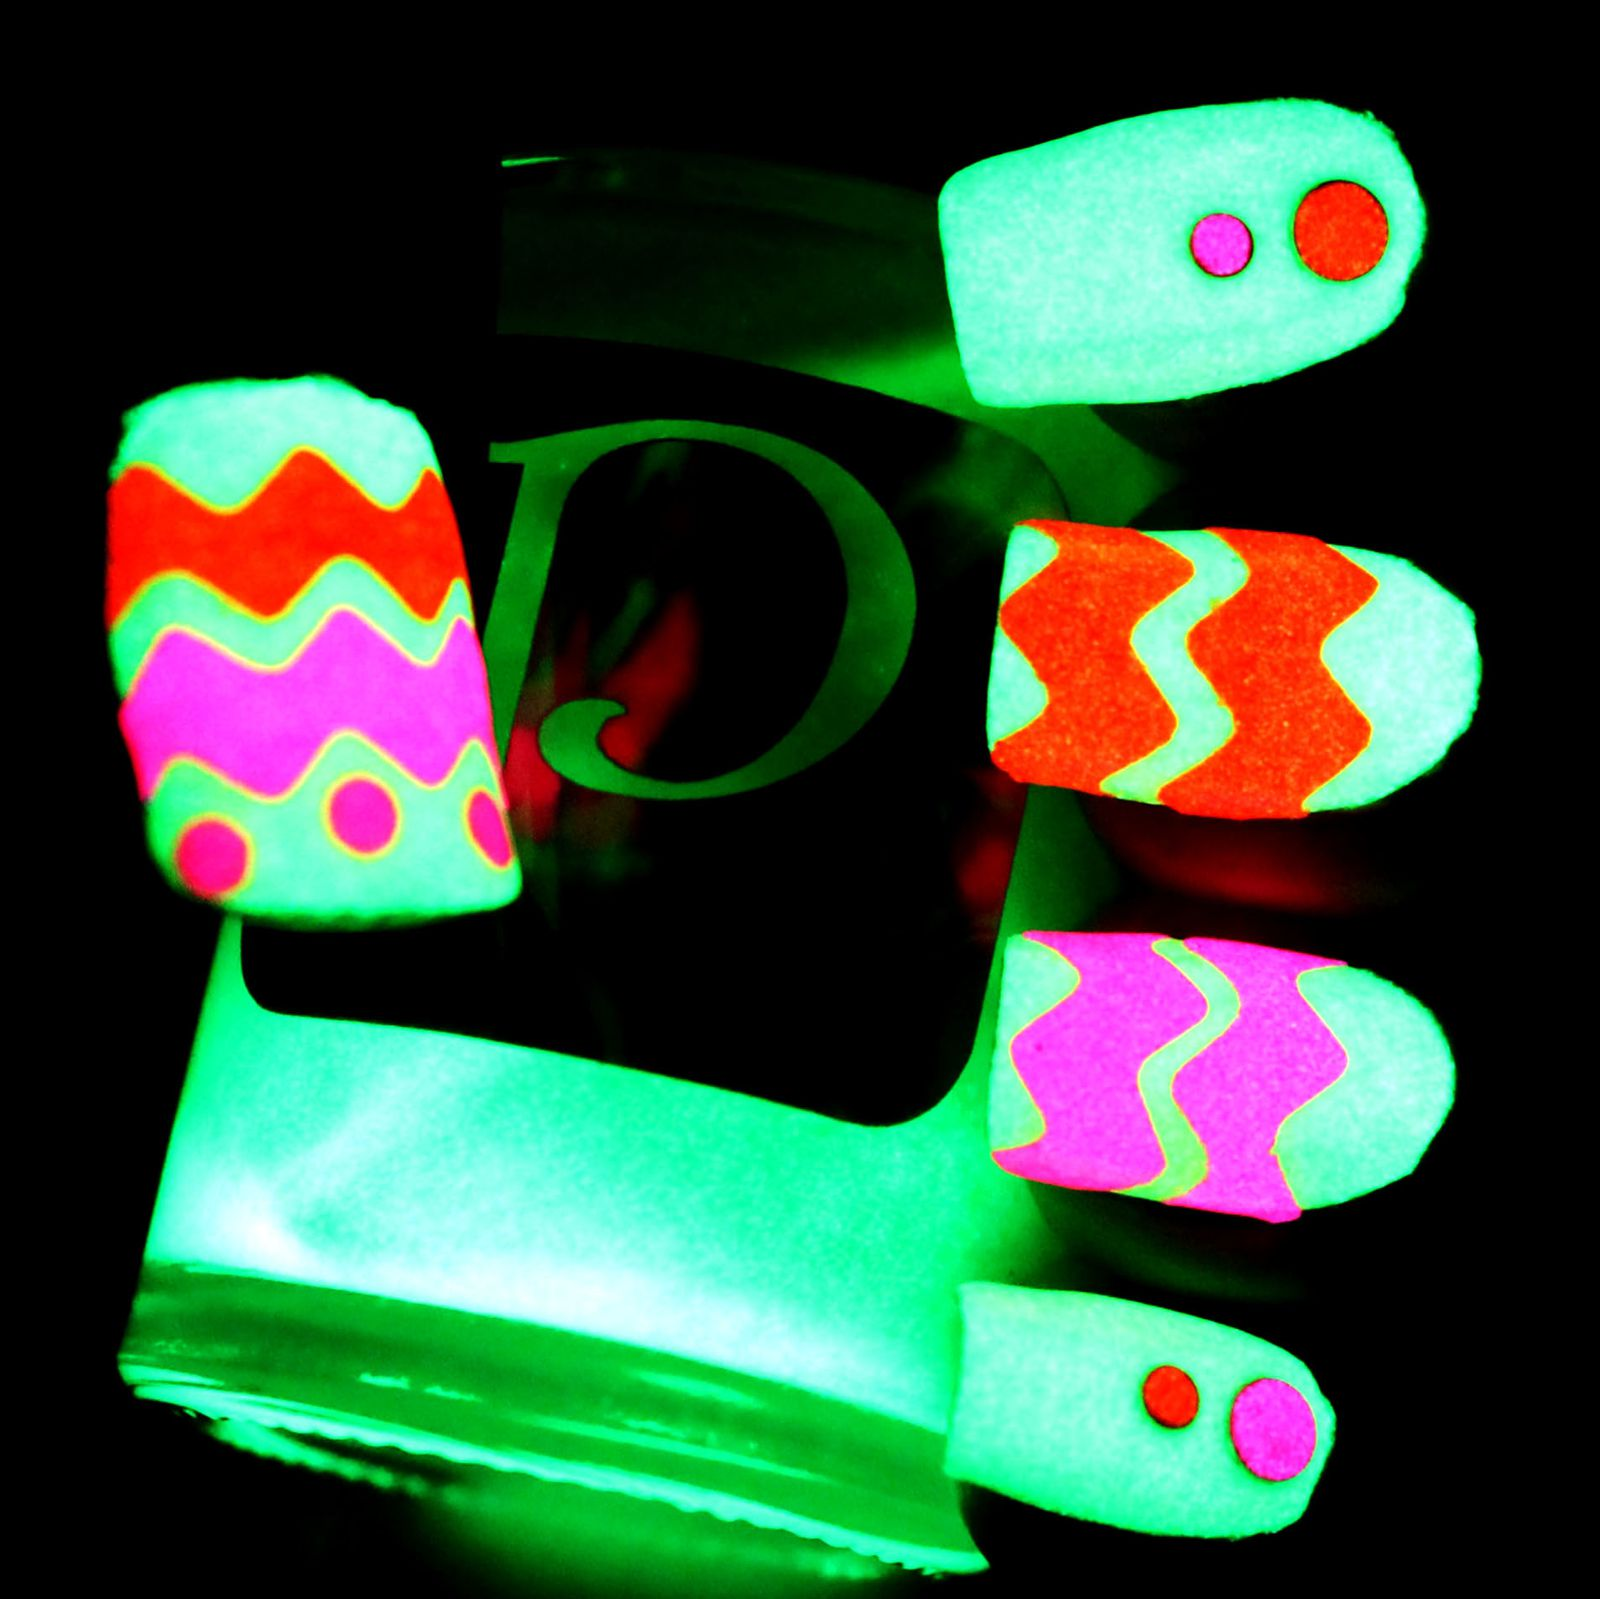 Essie Protein Base Coat / PMTG White Undies / PMTG Kiwi Sueeze / Chevrons with PolihsMeToGo Pretty Girls & Orange You Glad / PolishMeToGo Neon Studs / Konad Top Coat